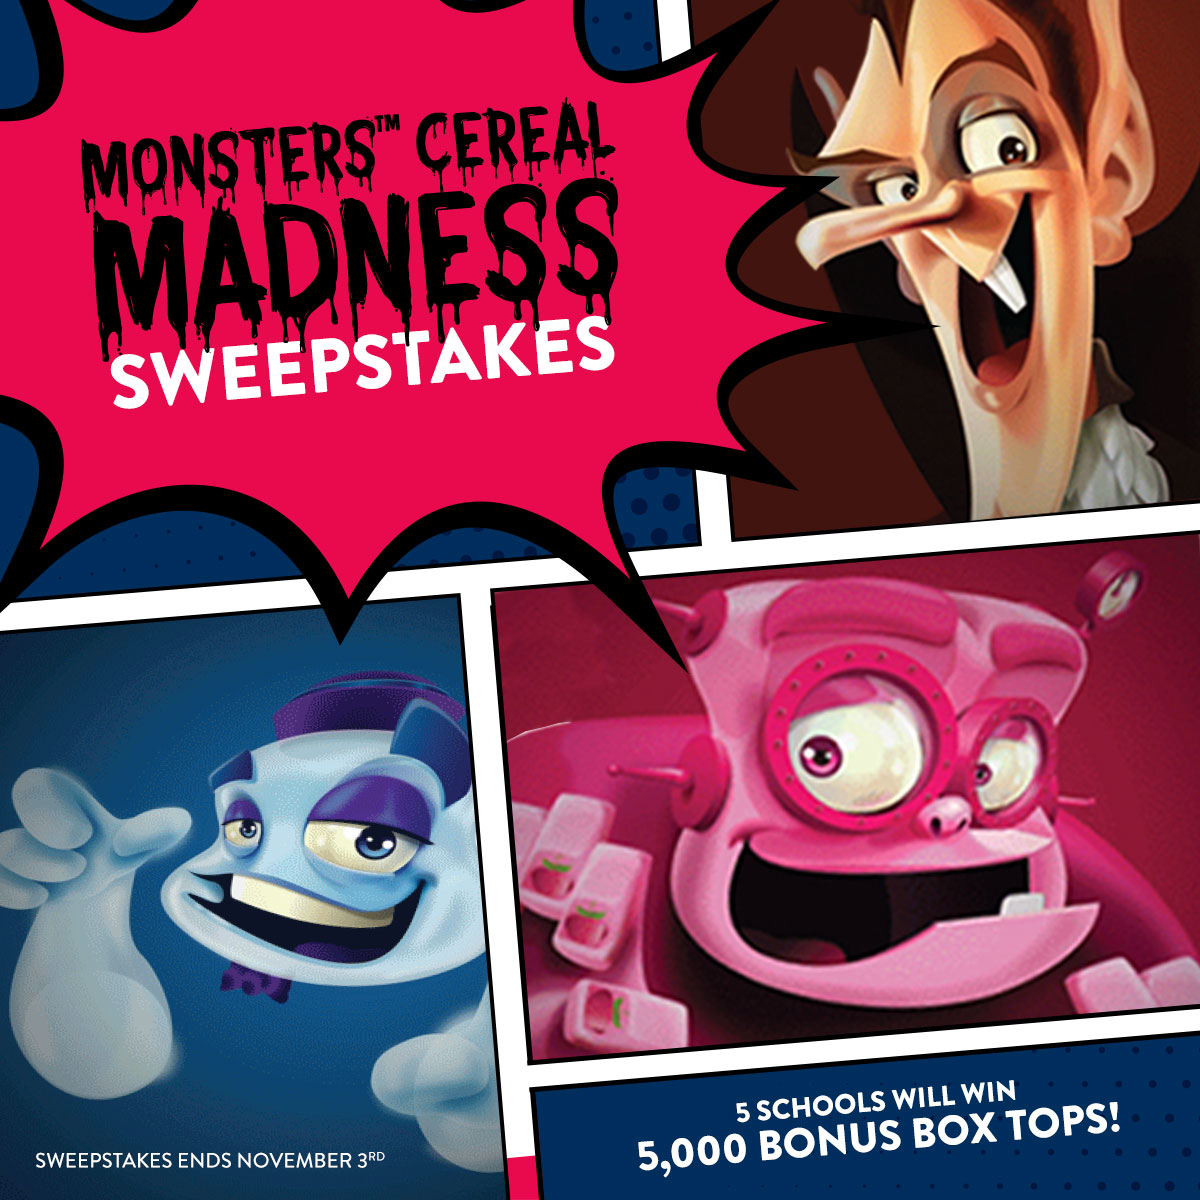 Win Box Tops for Education Bonus Box Tops for your school when you enter the Box Tops for Education Monsters Cereal Sweepstakes by mail or with purchase. Scan your receipt on the Box Tops app for a chance to win 5,000 Bonus Box Tops for your school.